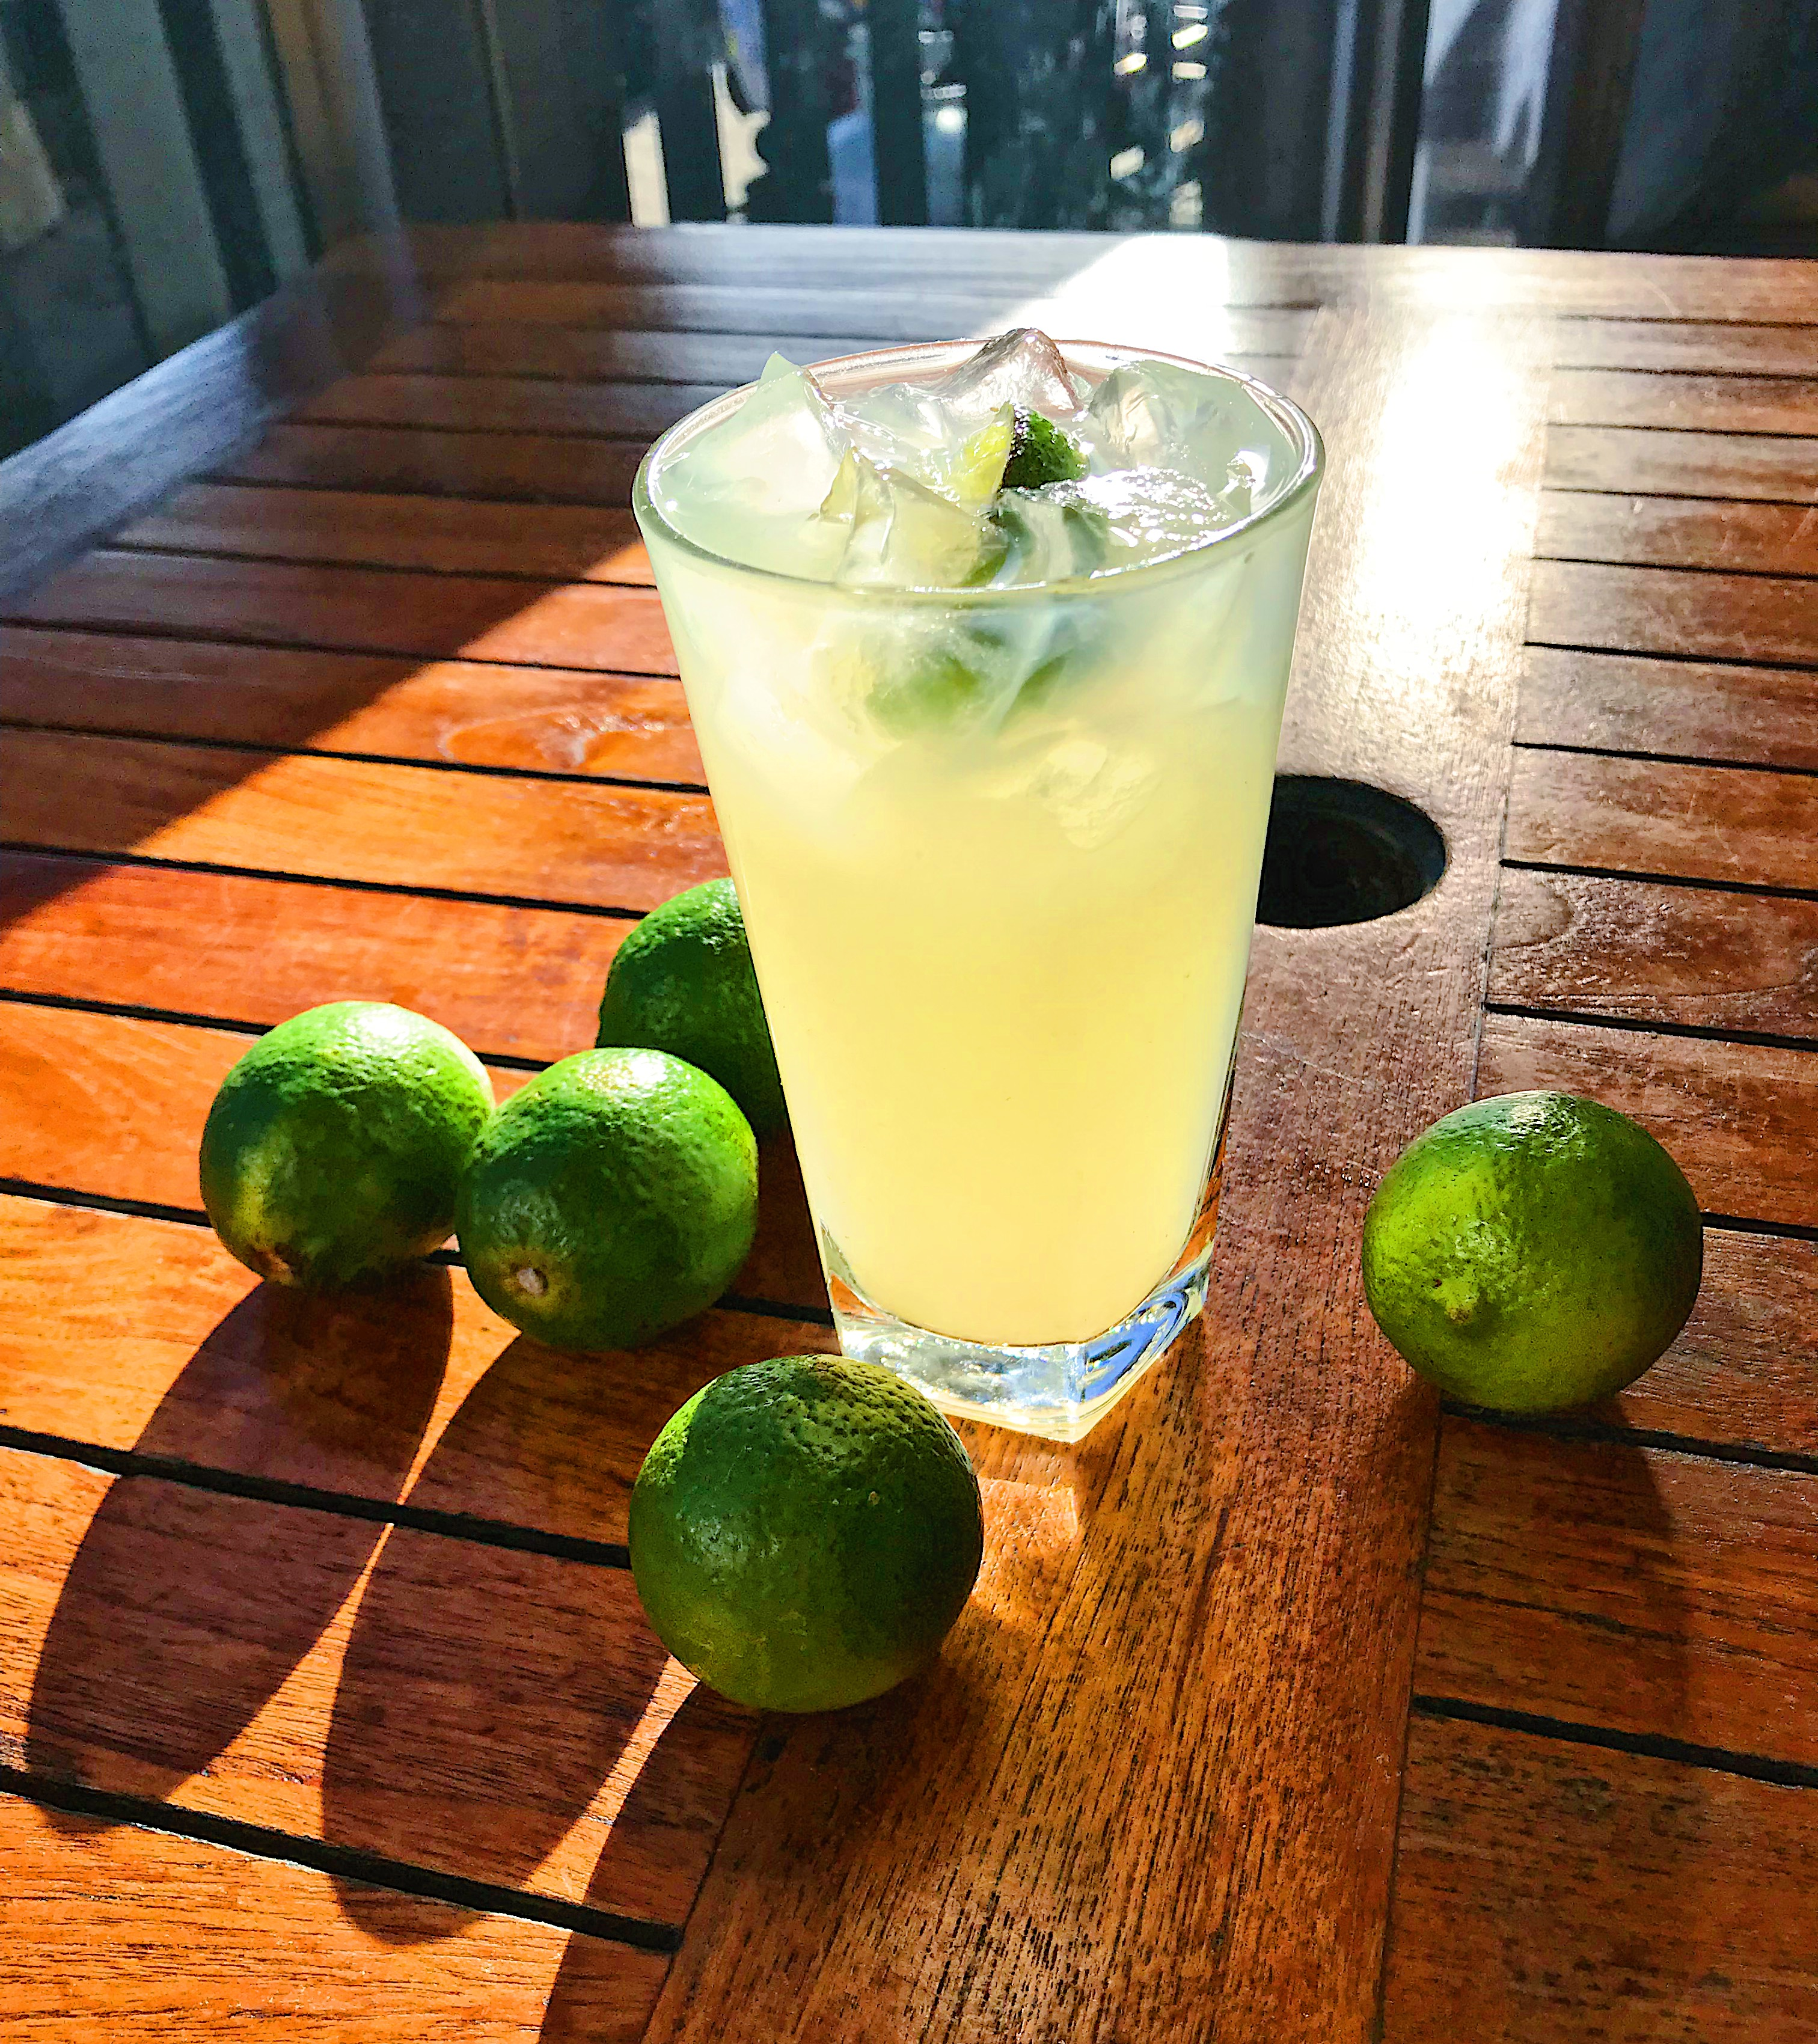 Limeade: The Roadhouse has a New Squeeze